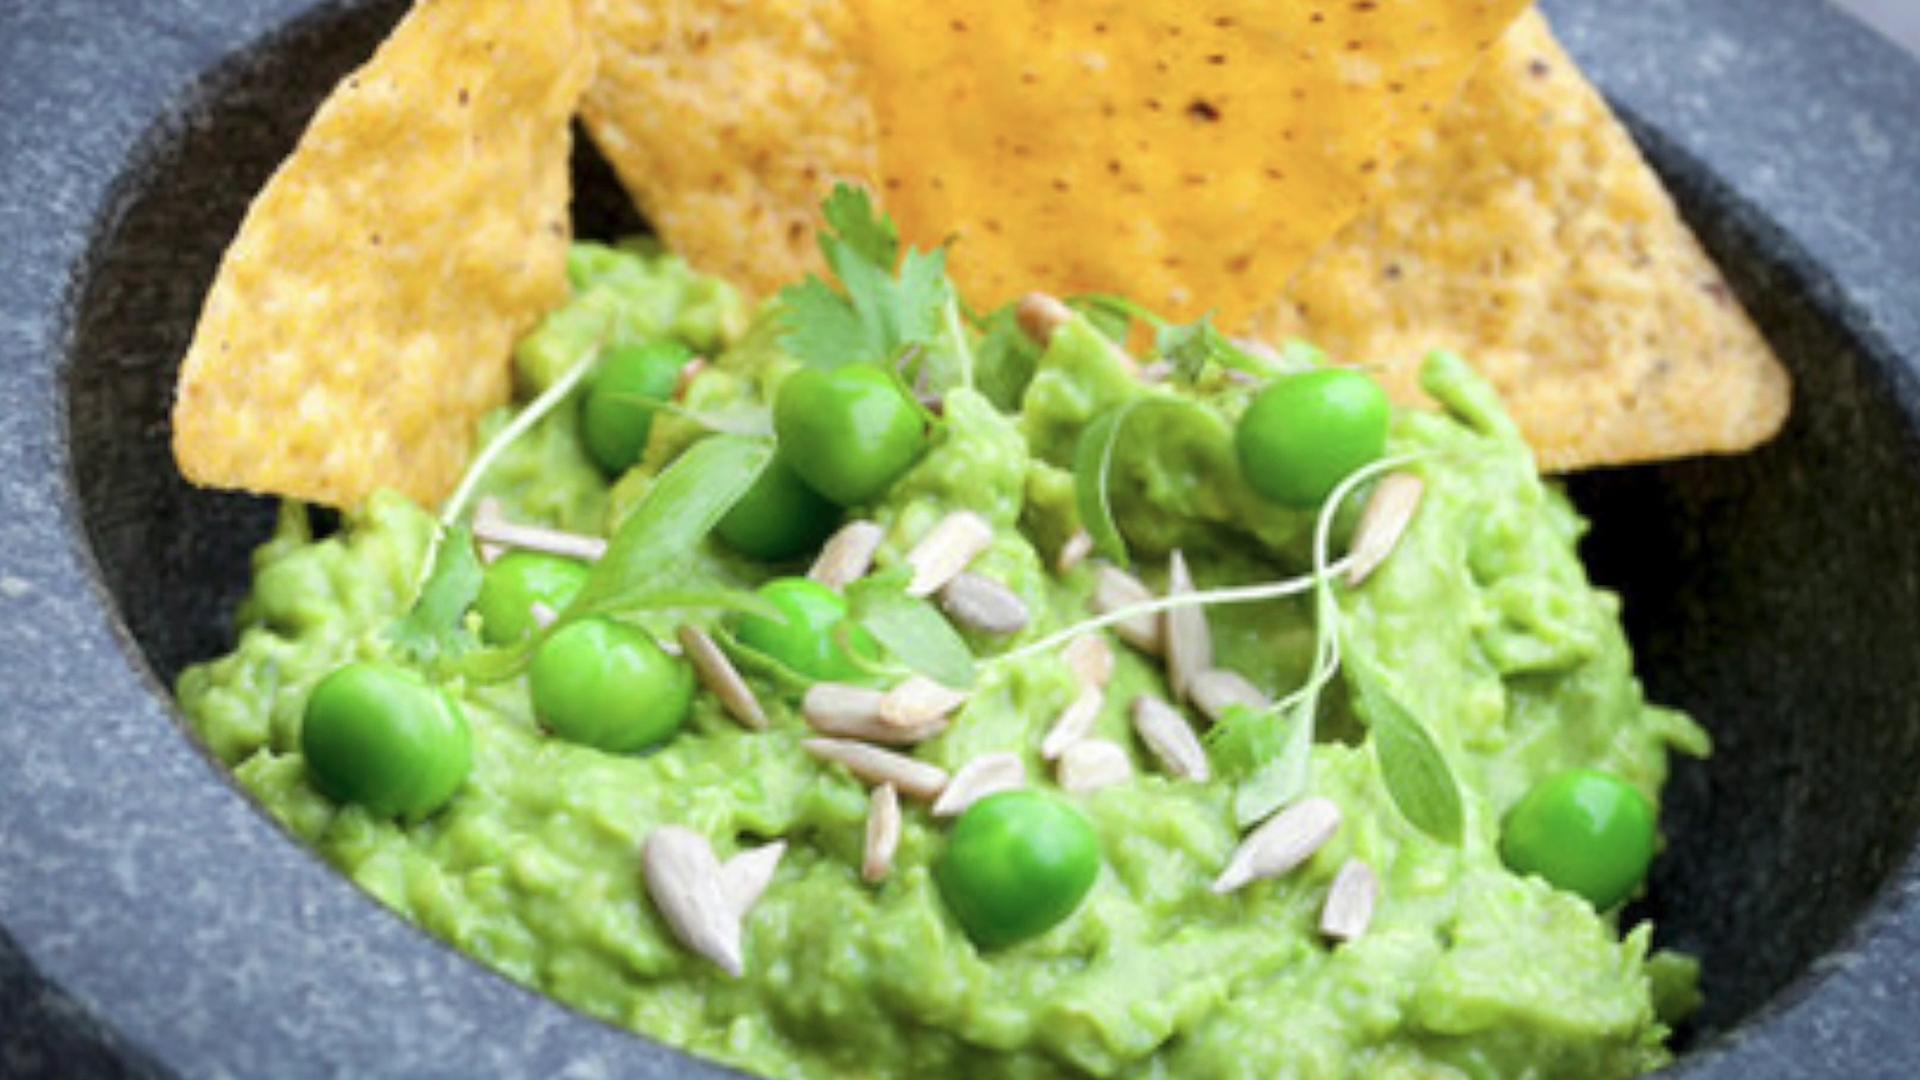 Guacamole recipe brings Republicans and Democrats together